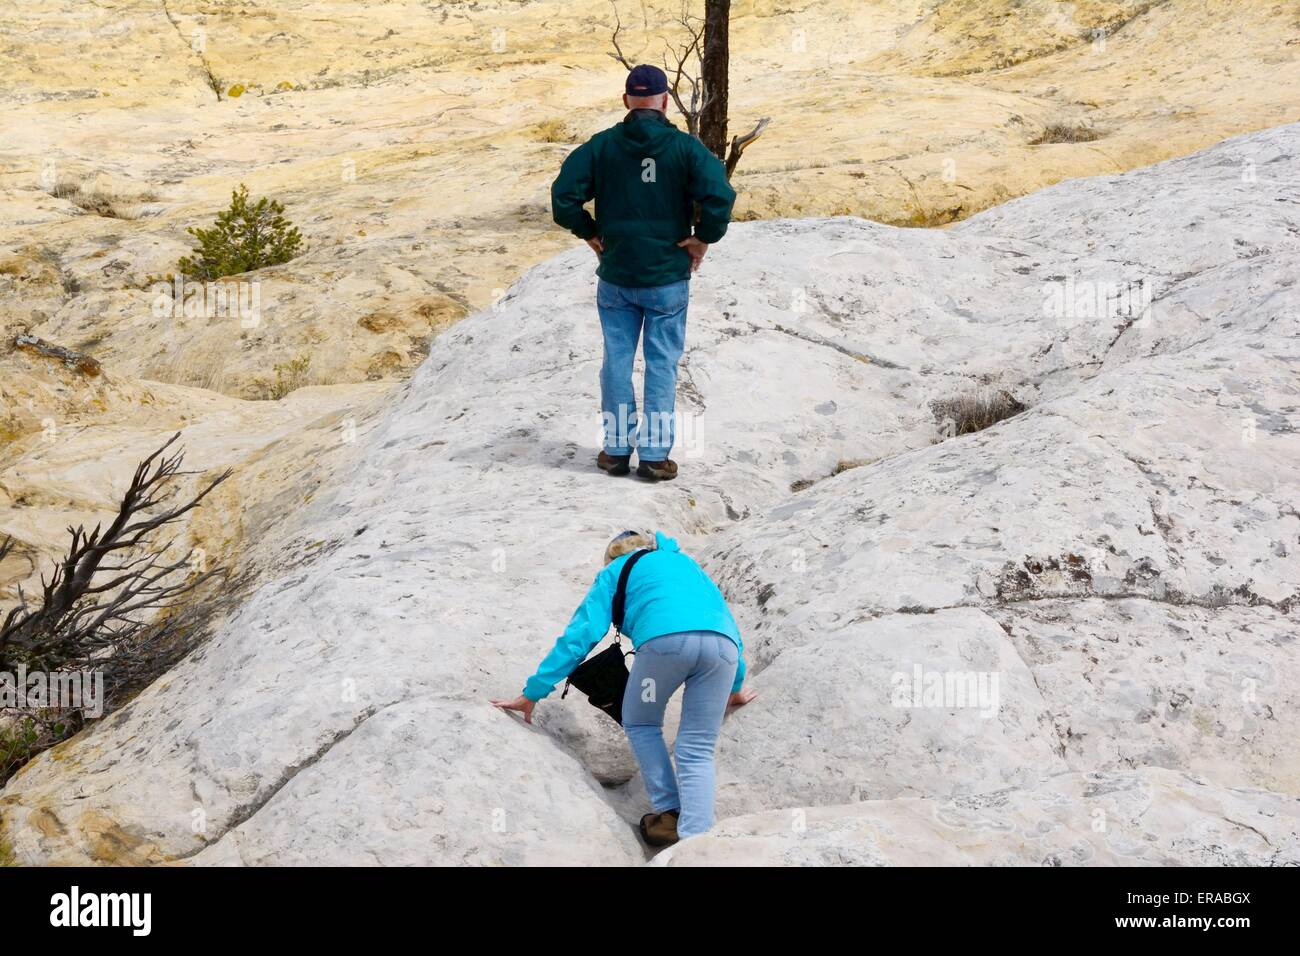 Brother waiting for sister on sandstone bluff El Morro National Monument New Mexico - USA - Stock Image